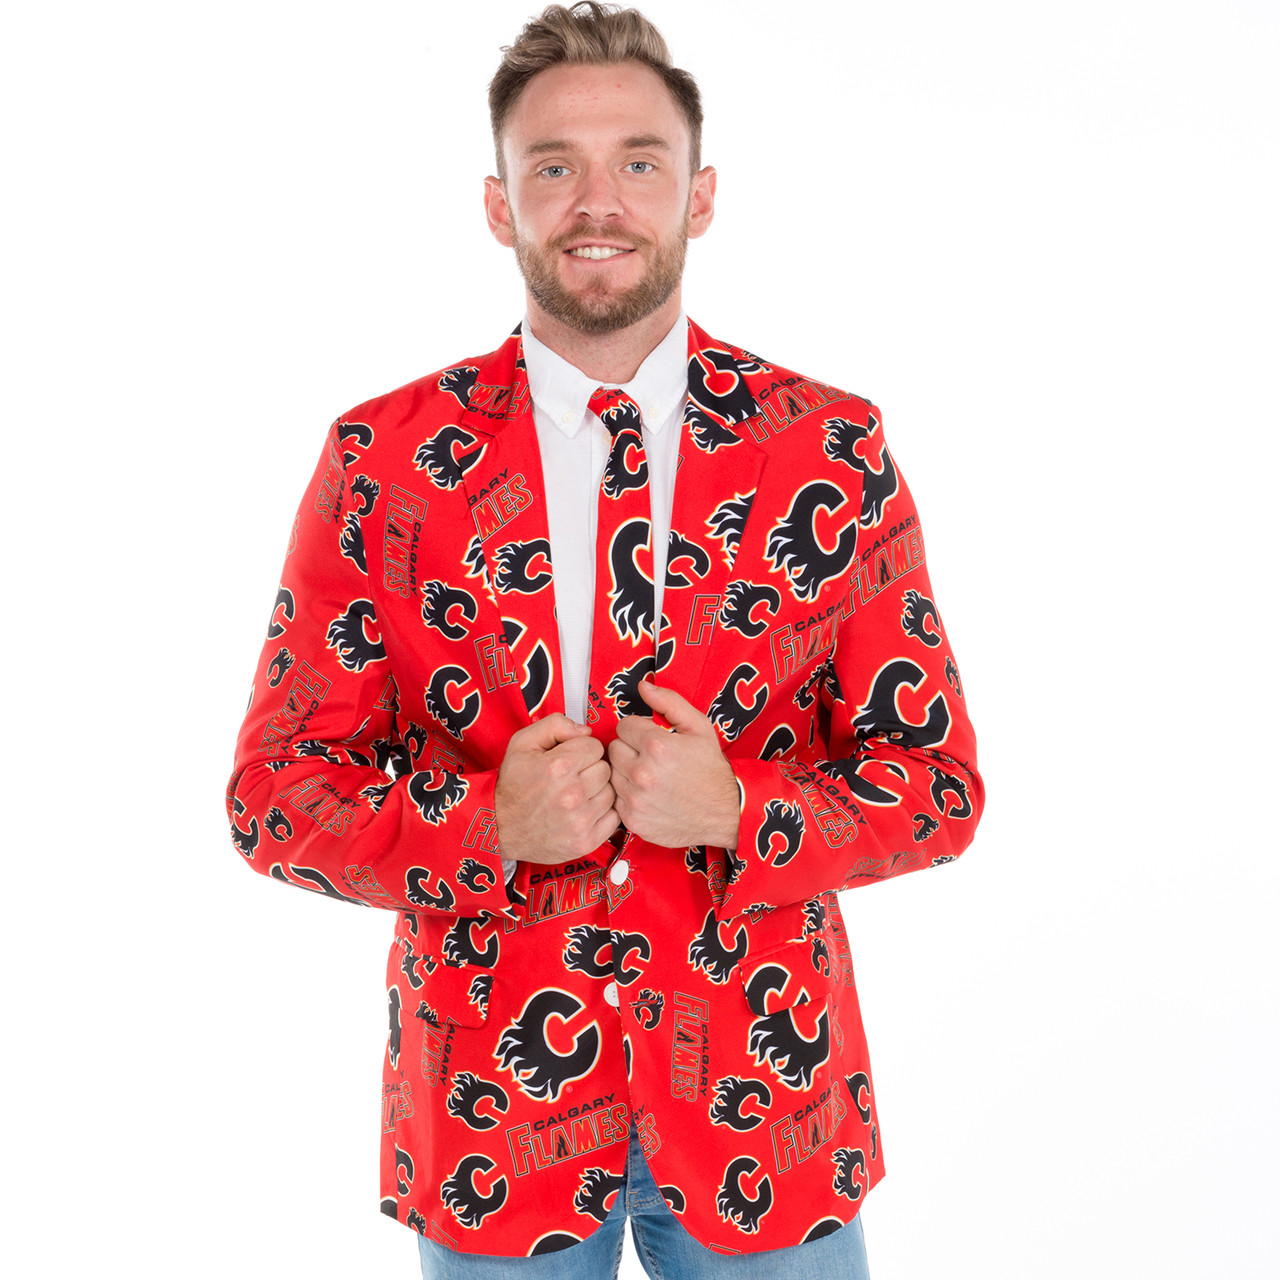 9a0a9957807 Calgary Flames NHL Ugly Suit Jacket and Tie